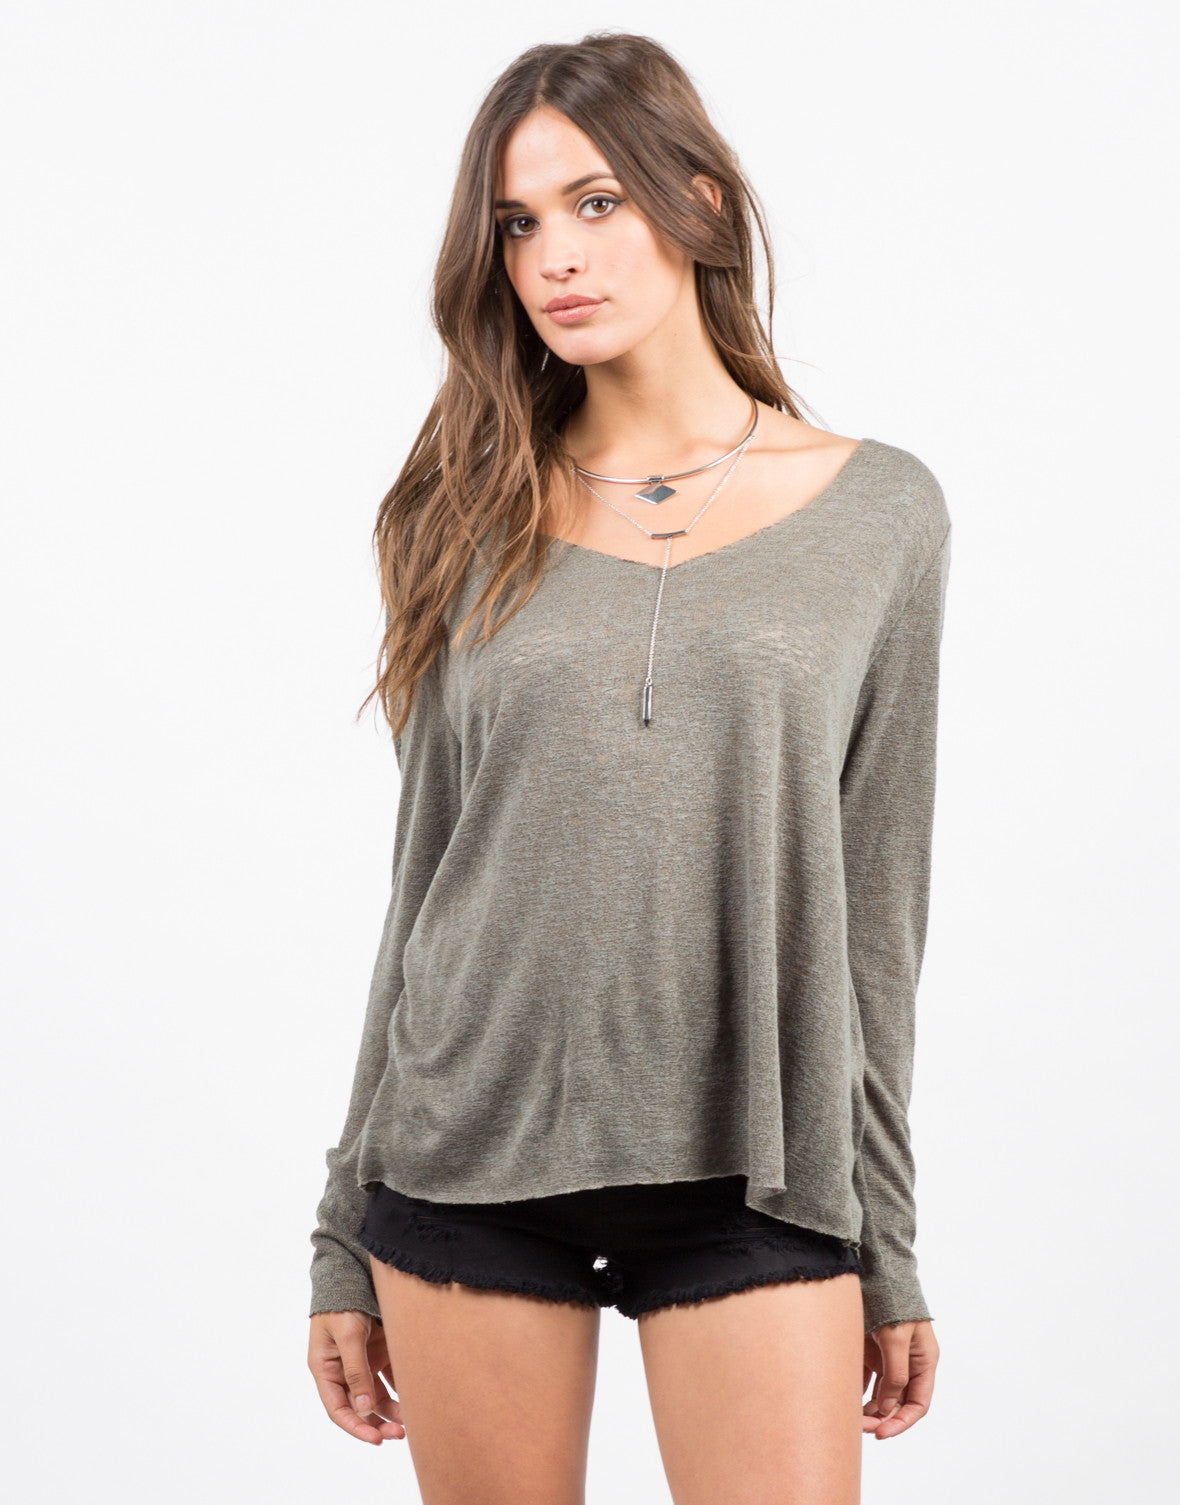 Front View of Basic Long Sleeve Top